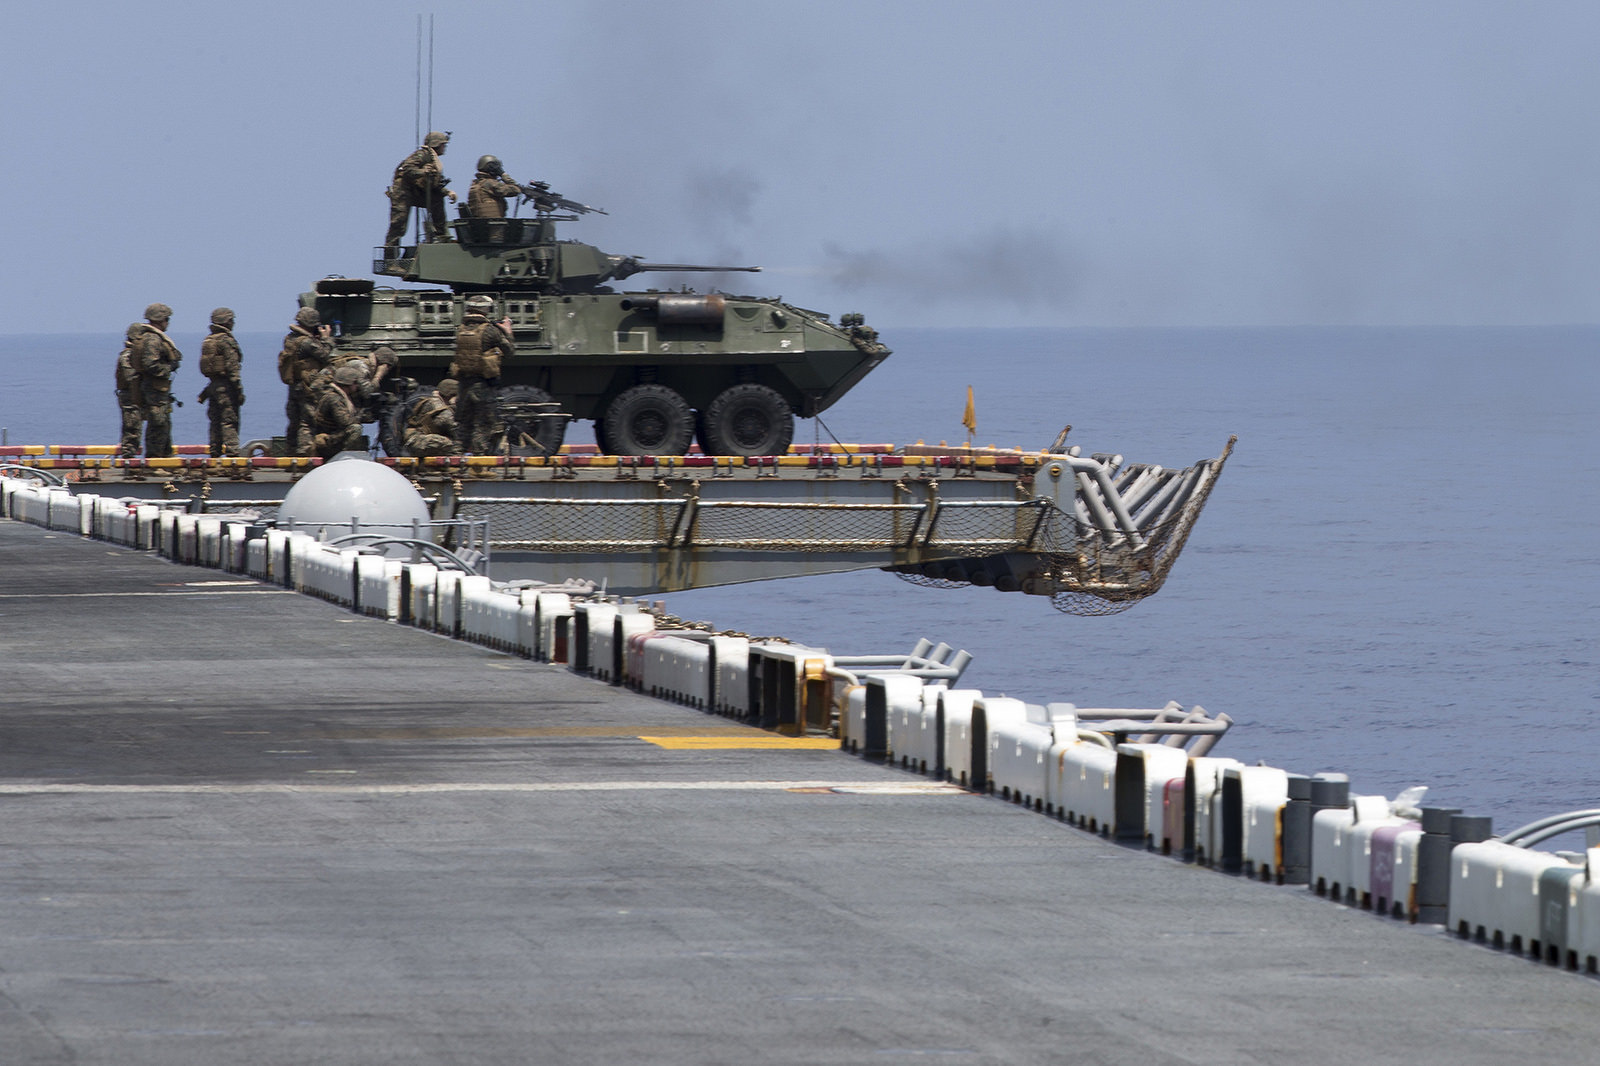 Marines with Weapons Company, Battalion Landing Team, 2nd Battalion, 5th Marines, sit on a Light Armored Vehicle atop the flight deck aboard the amphibious assault ship USS Wasp (LHD 1) on Sept. 27, 2018, during a defense of the amphibious task force drill in the South China Sea. During the training, Marines with BLT 2/5 and crewmen with the Wasp rehearsed ship security using a variety of mounted and dismounted small-arms and heavy weapons. (Gunnery Sgt. E. V. Hagewood/Marine Corps)